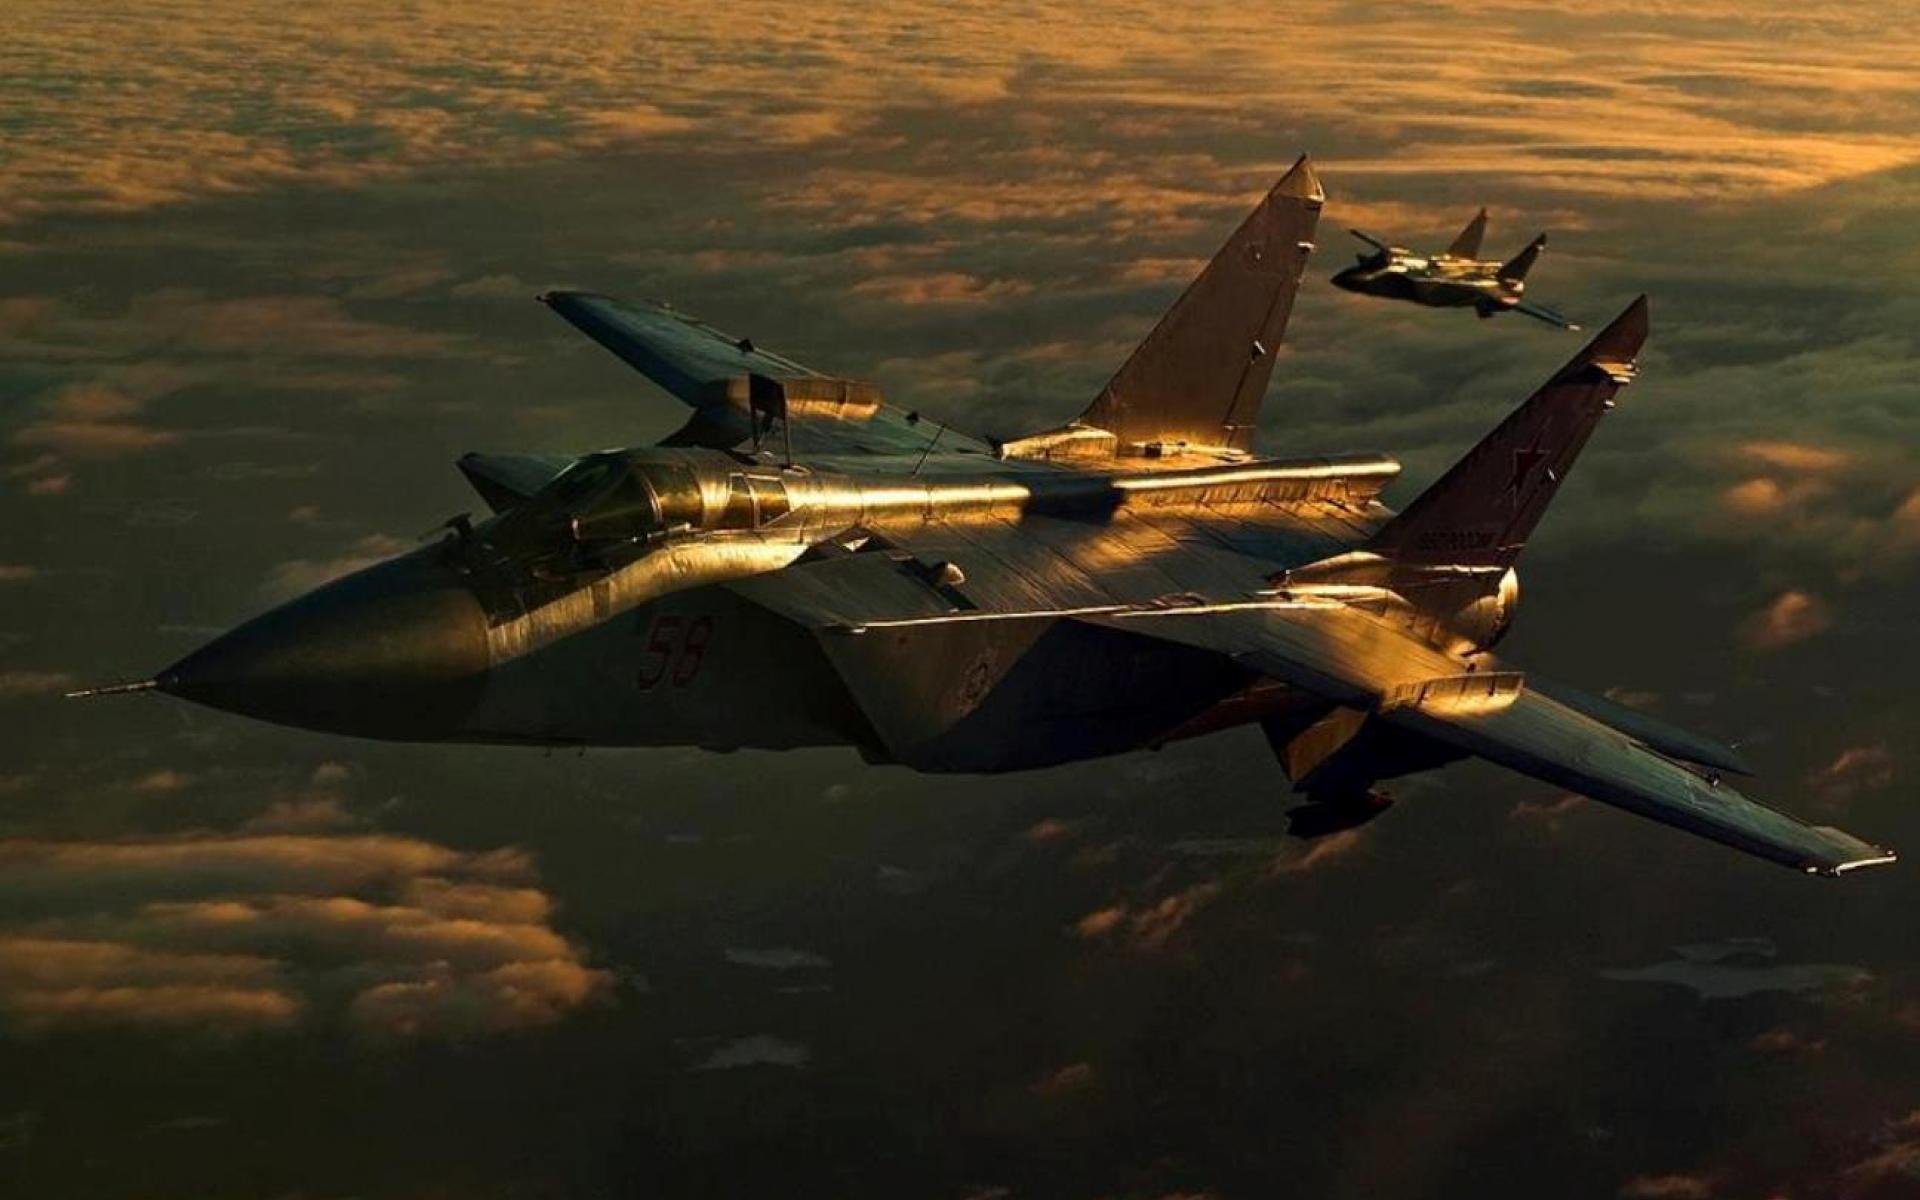 Mig 35 Hd Wallpaper: MIG-31 Fighter Jet Military Airplane Plane Russian Mig (25